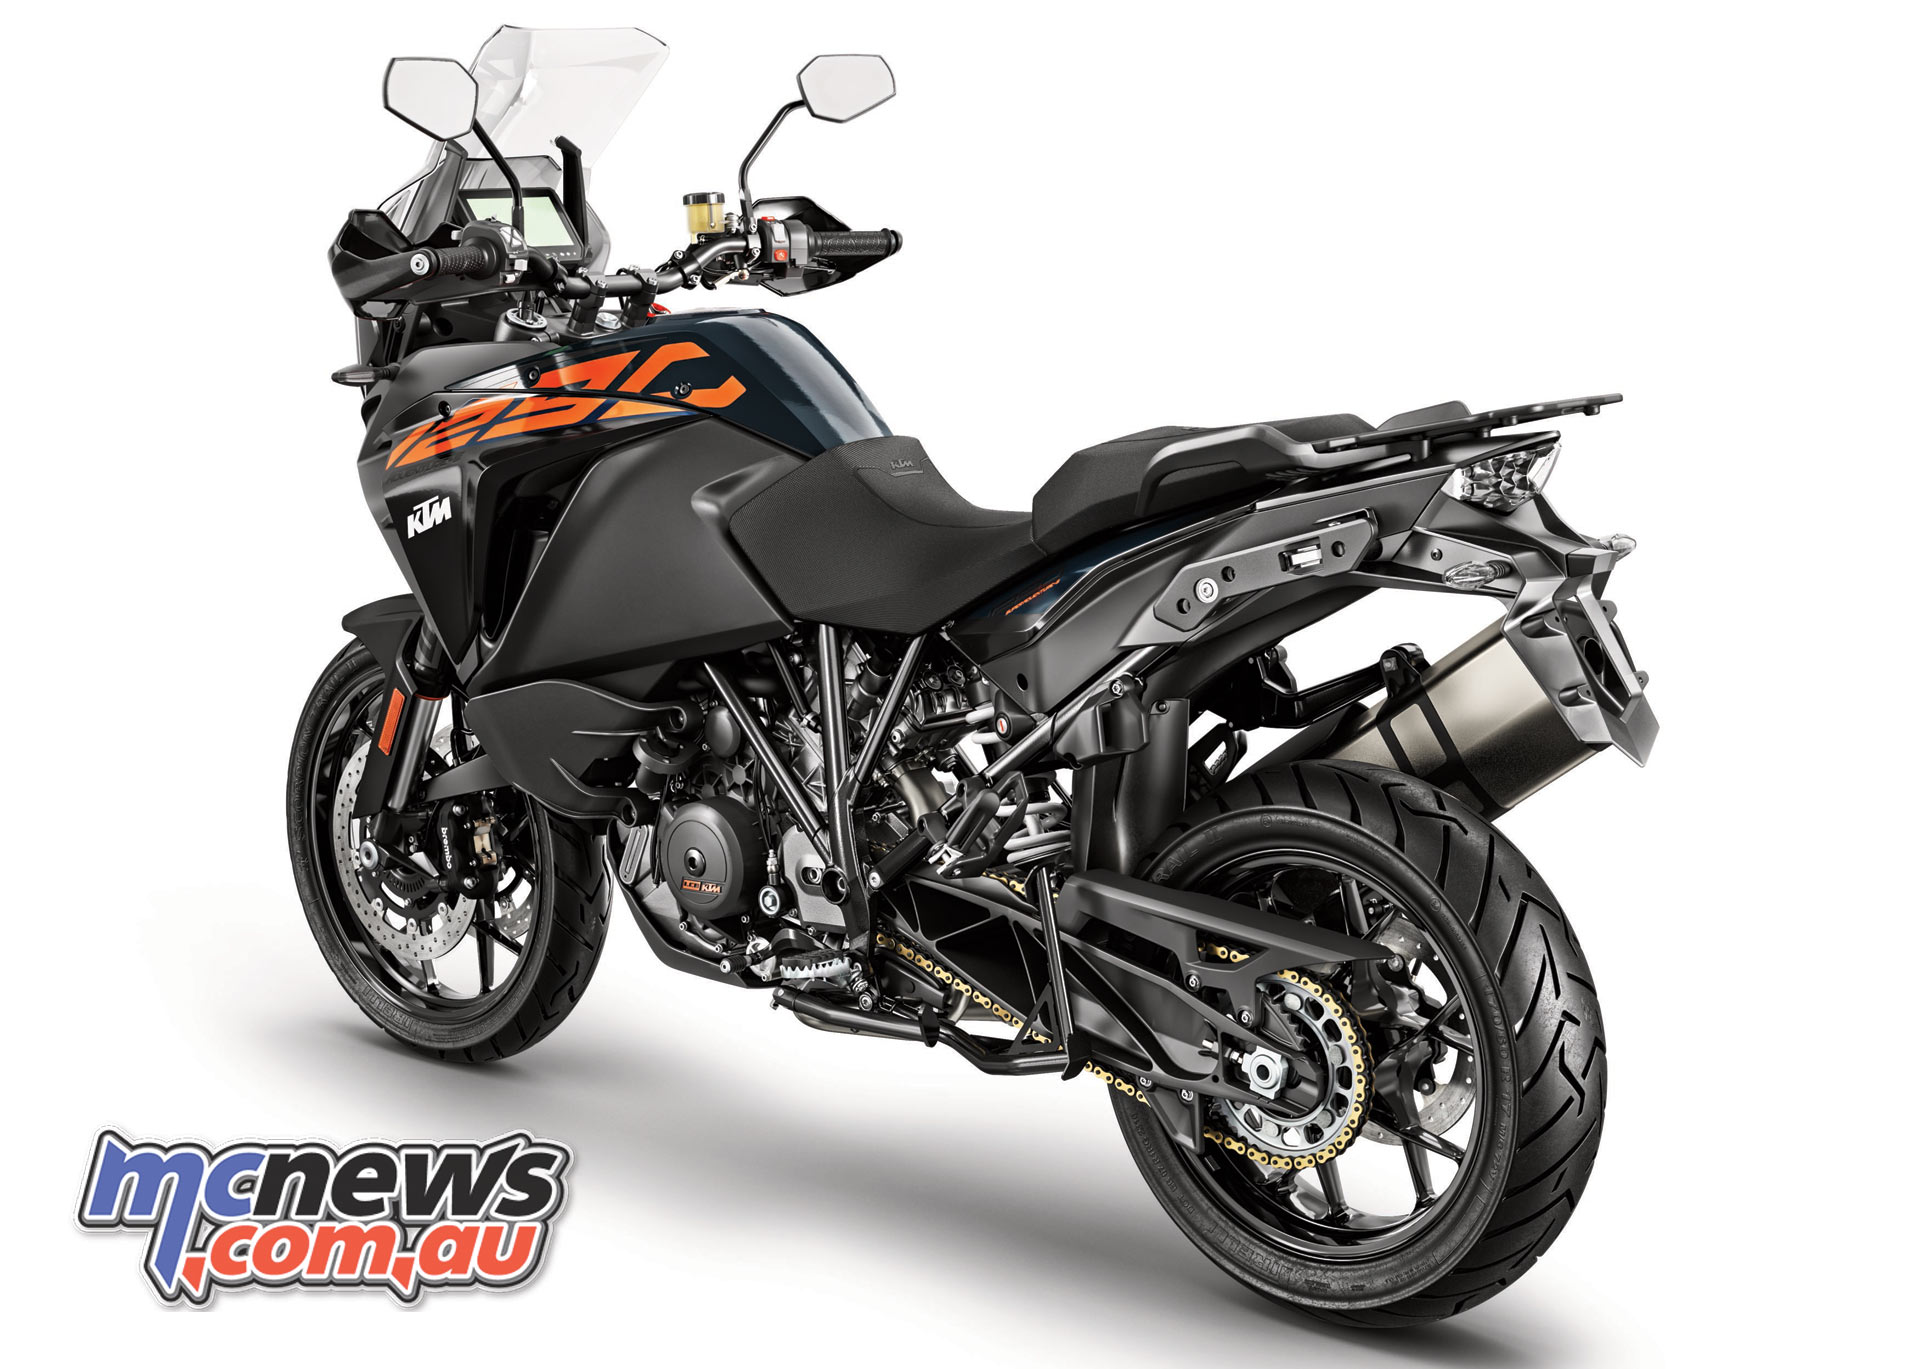 2017 Ktm 1290 Super Adventure S Motorcycle News Sport And Reviews